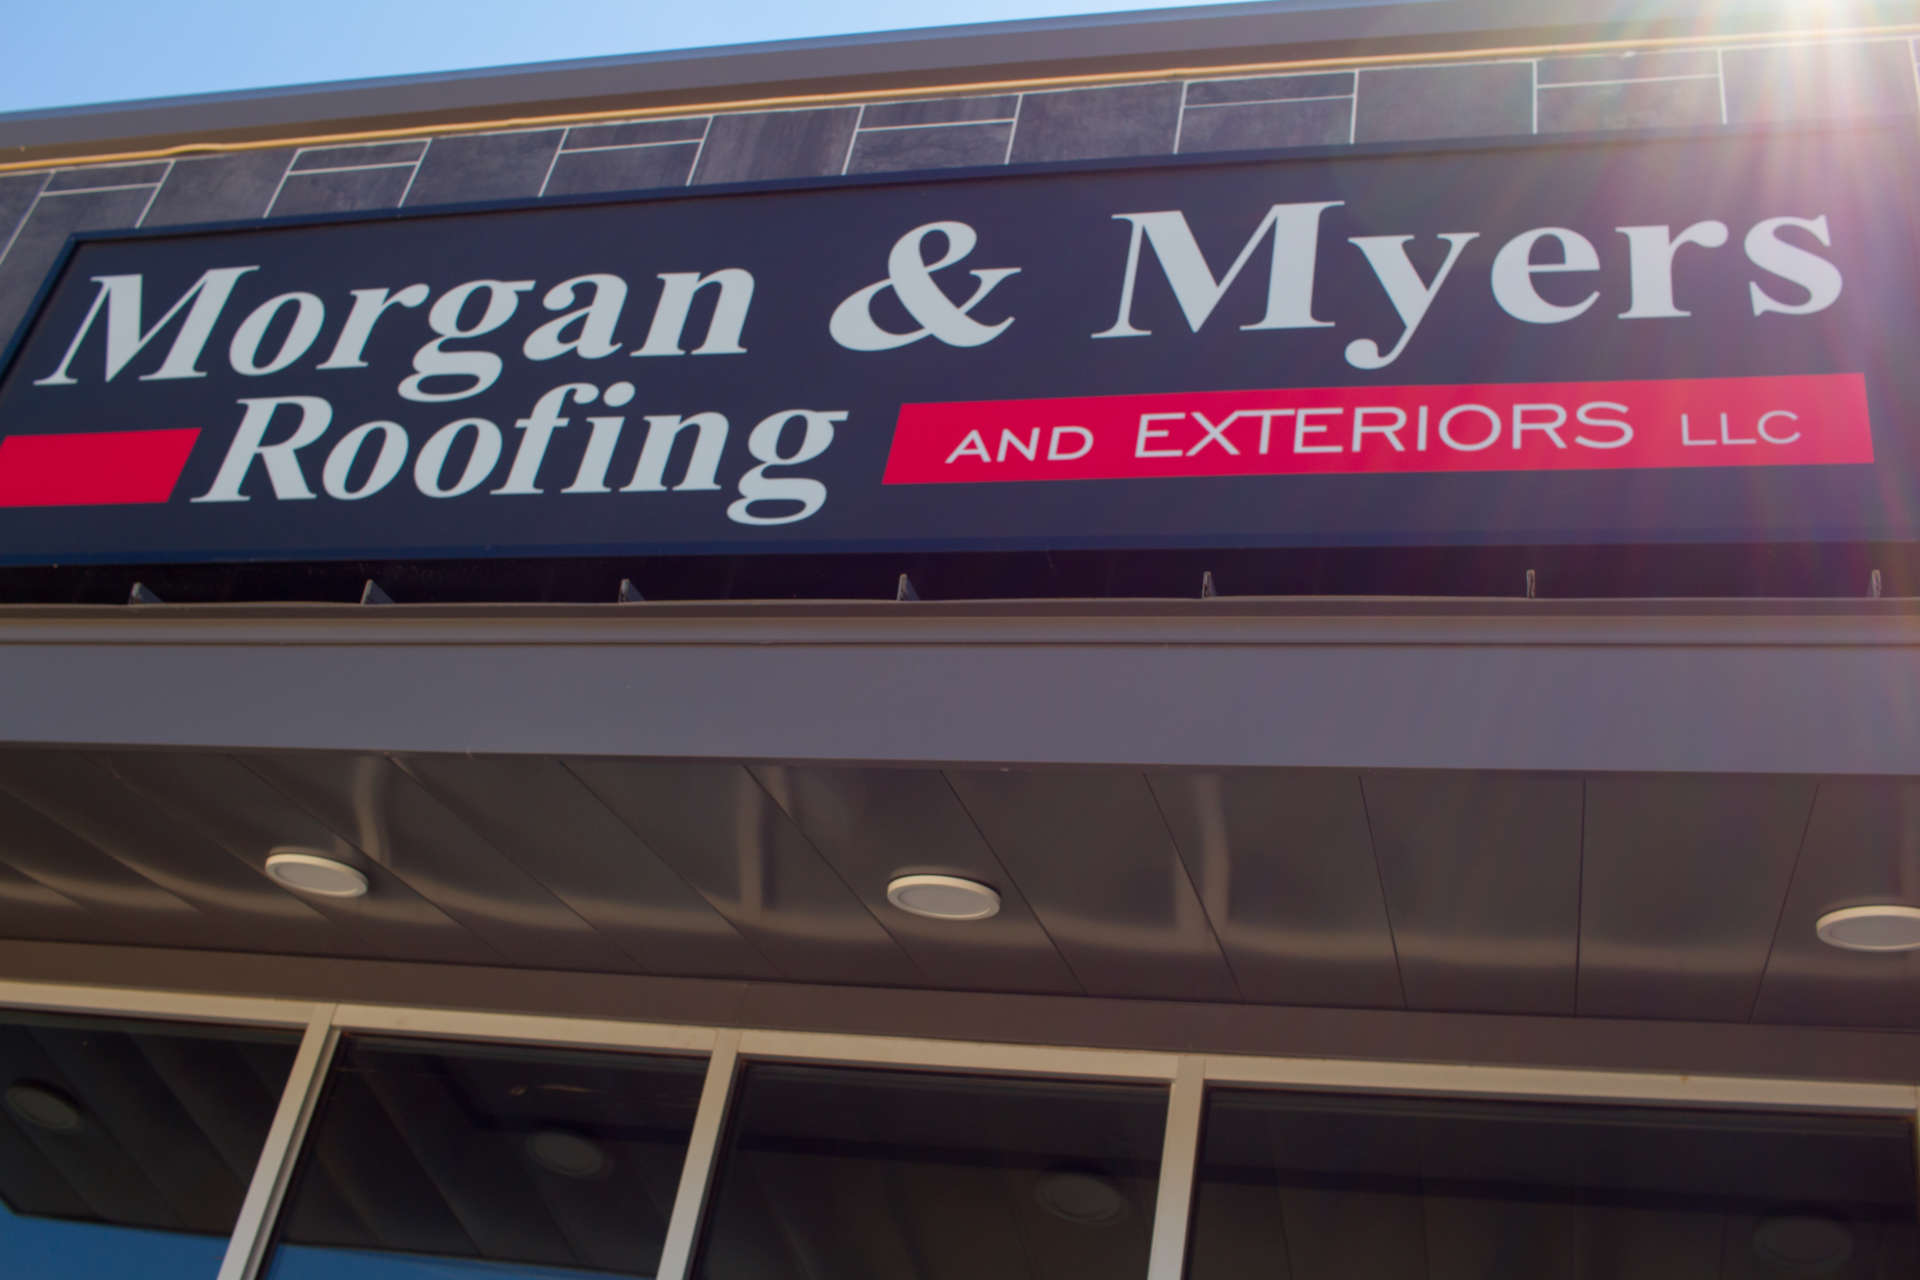 Morgan & Myers Roofing and Exteriors Signage above entrance with sunray